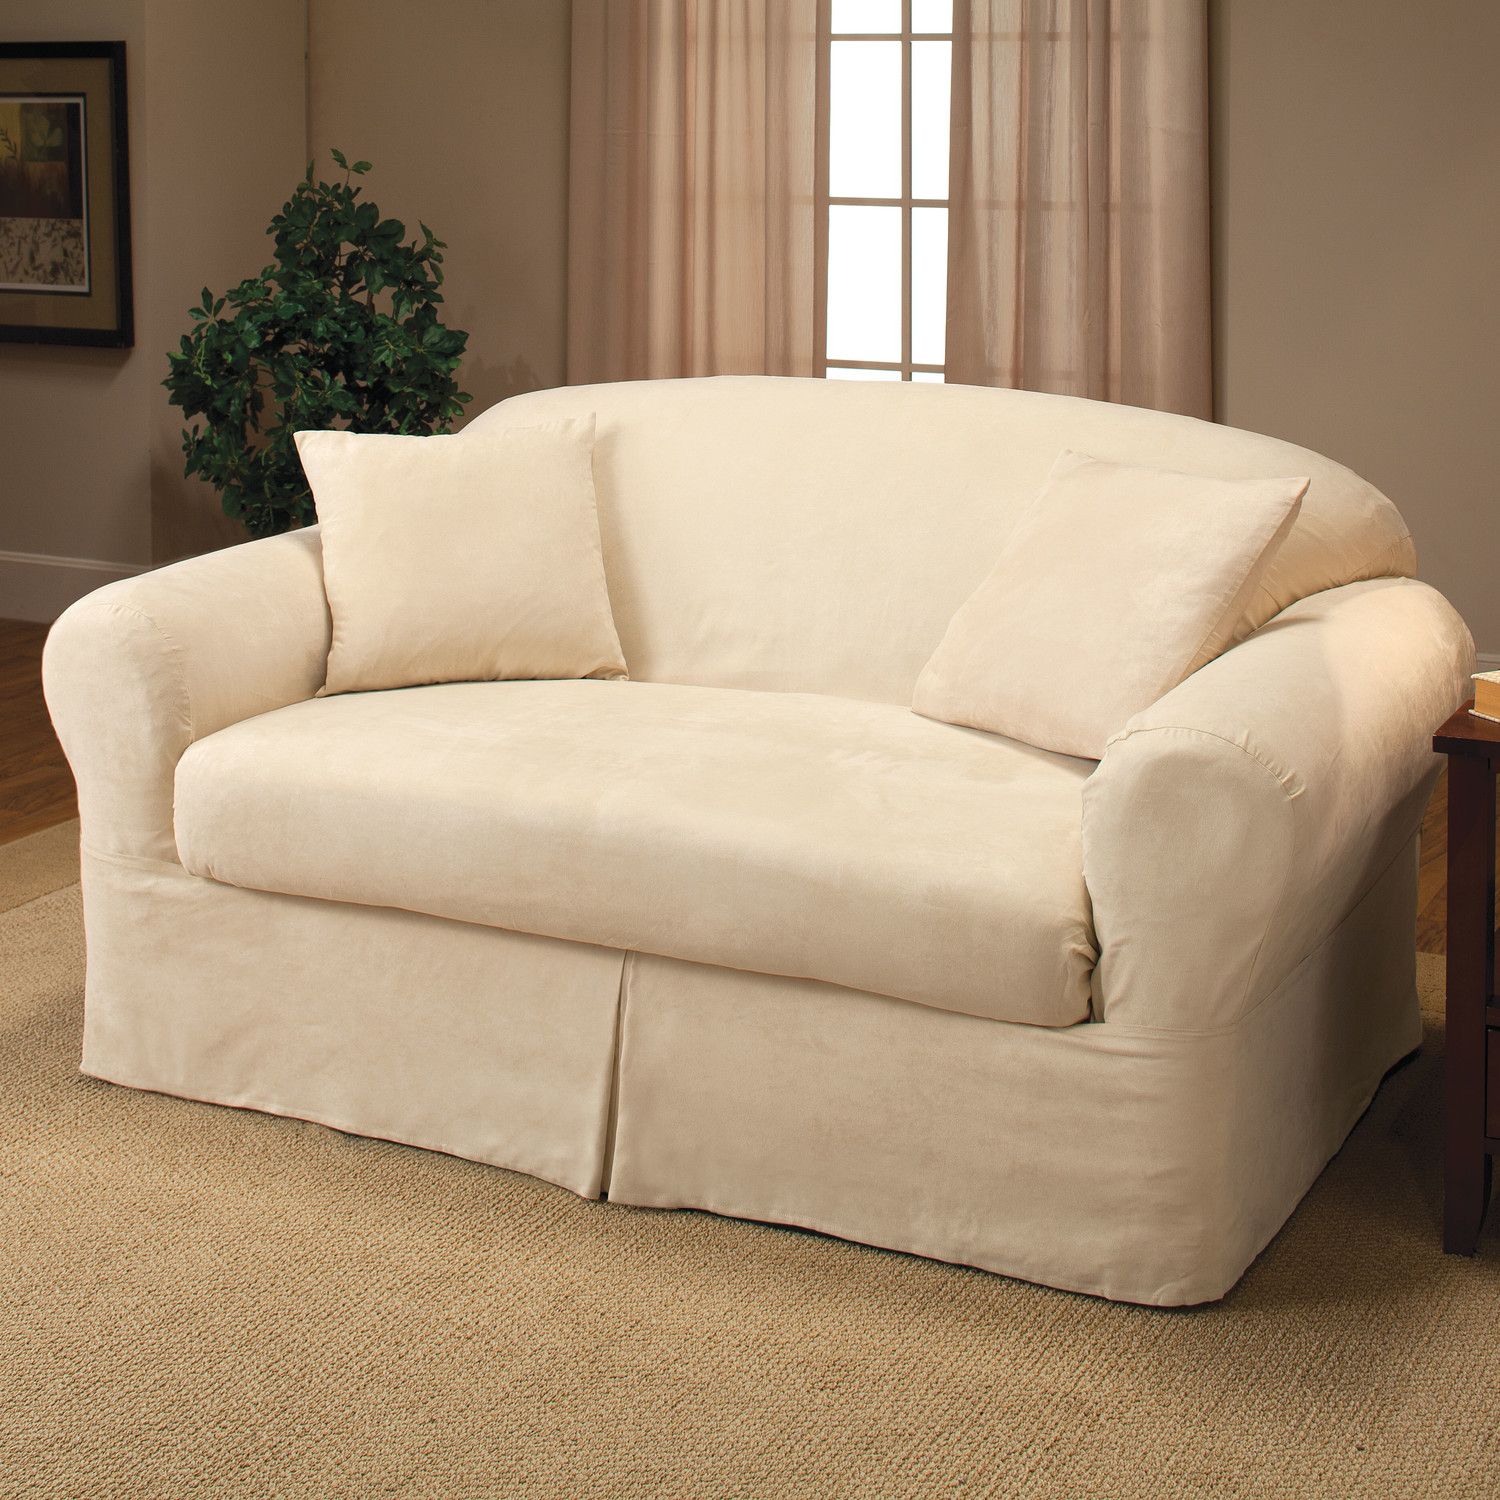 Slipcovers for loveseat ideas homesfeed White loveseat slipcovers